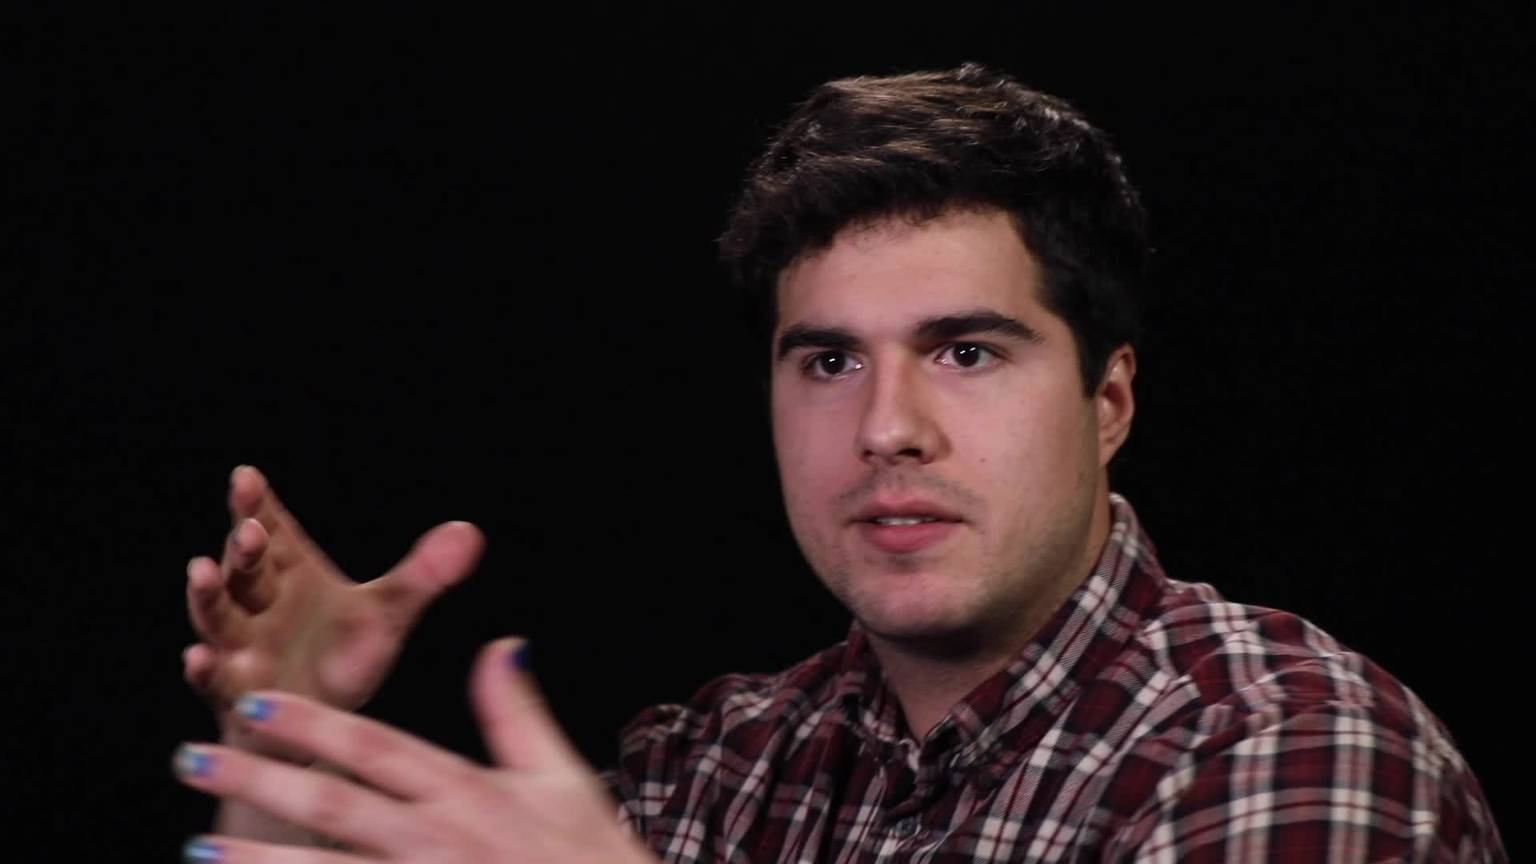 Jeremy Dutcher on how music moves people